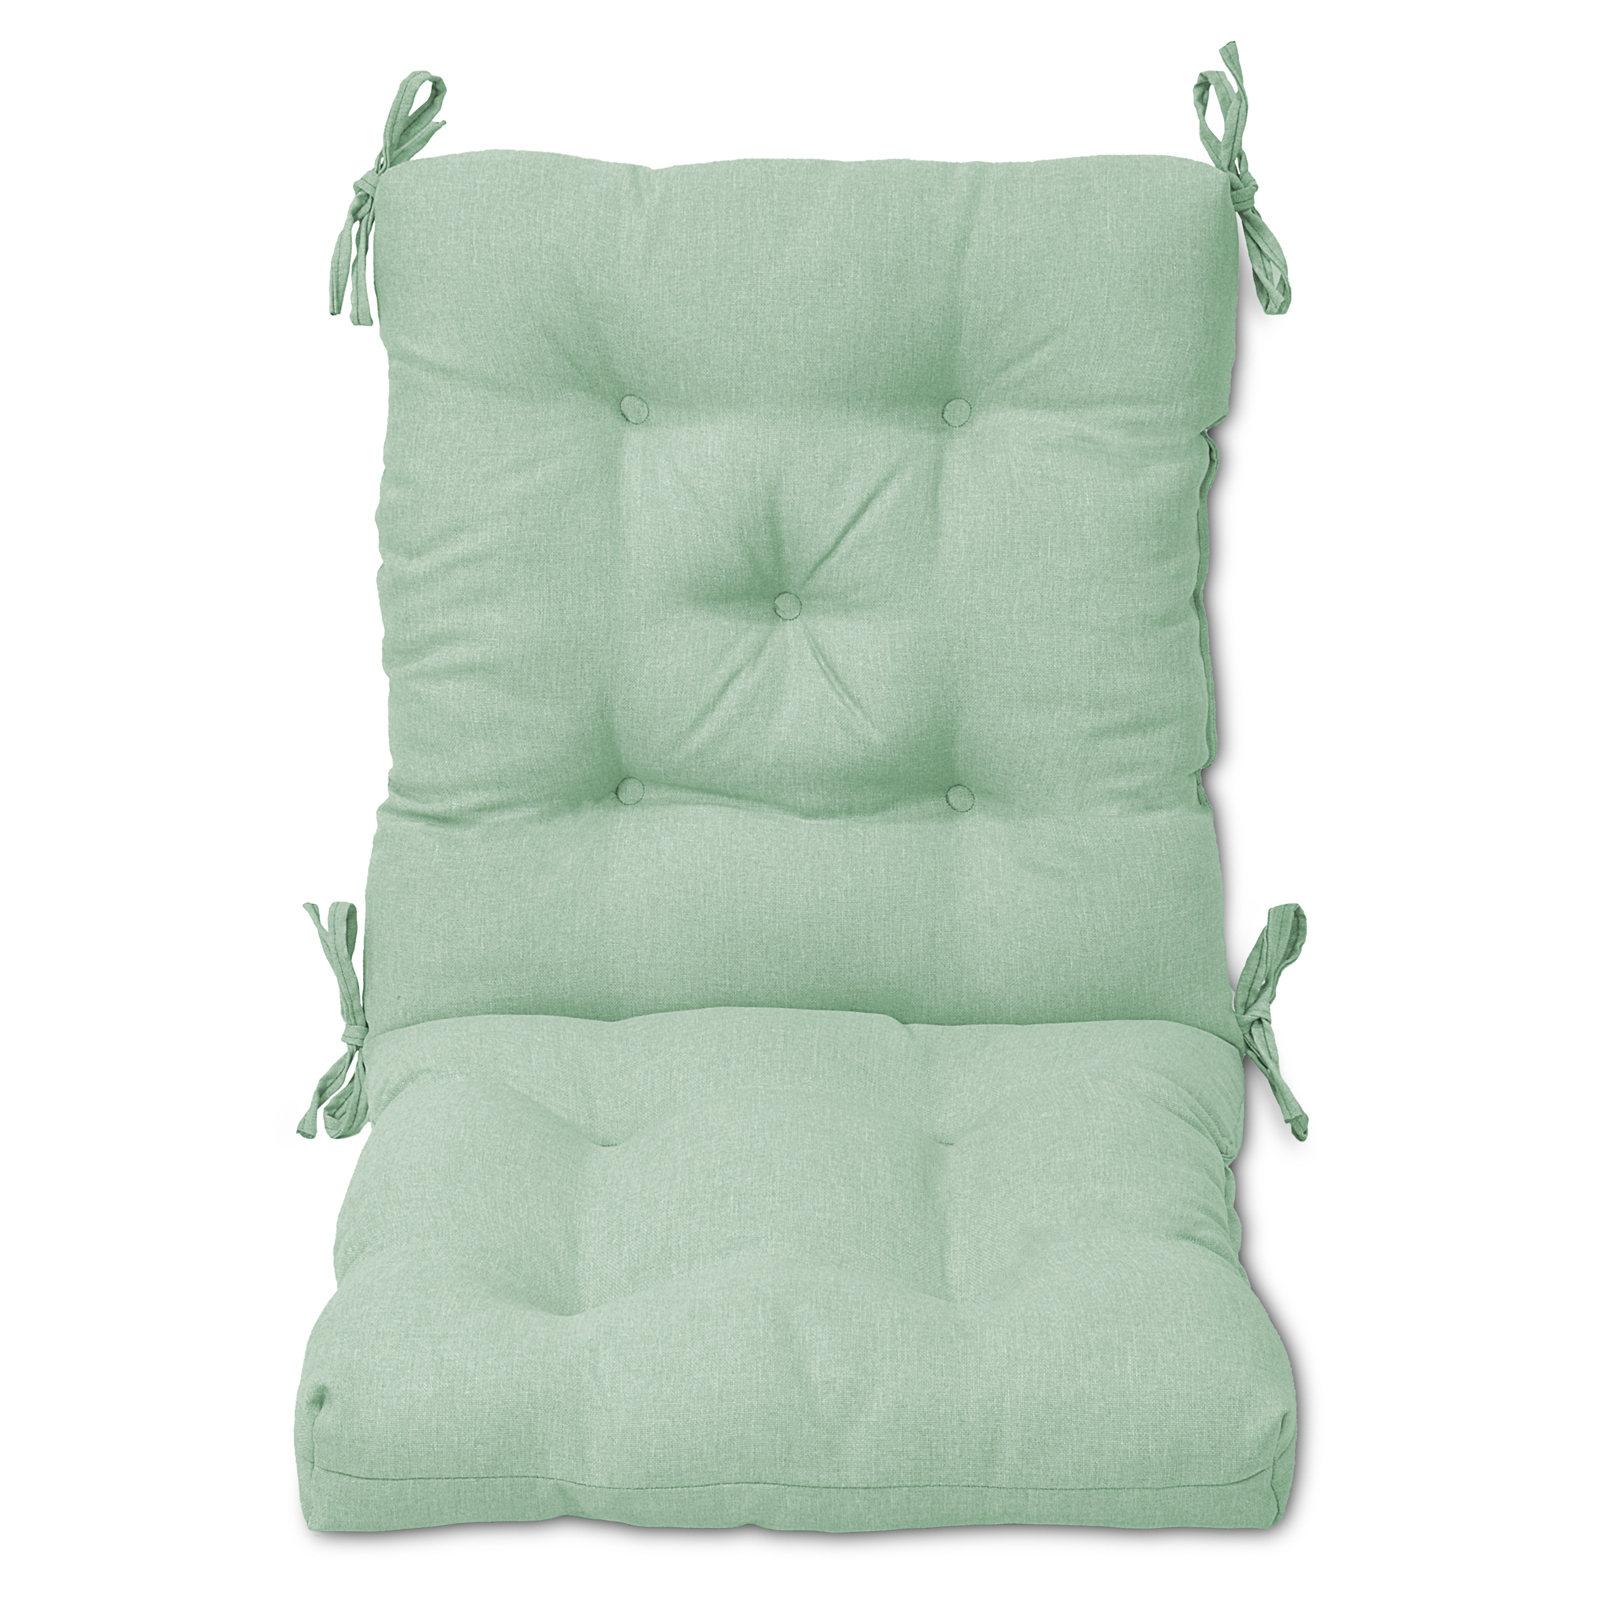 Plantation Patterns Tufted Hinged Chair Cushion